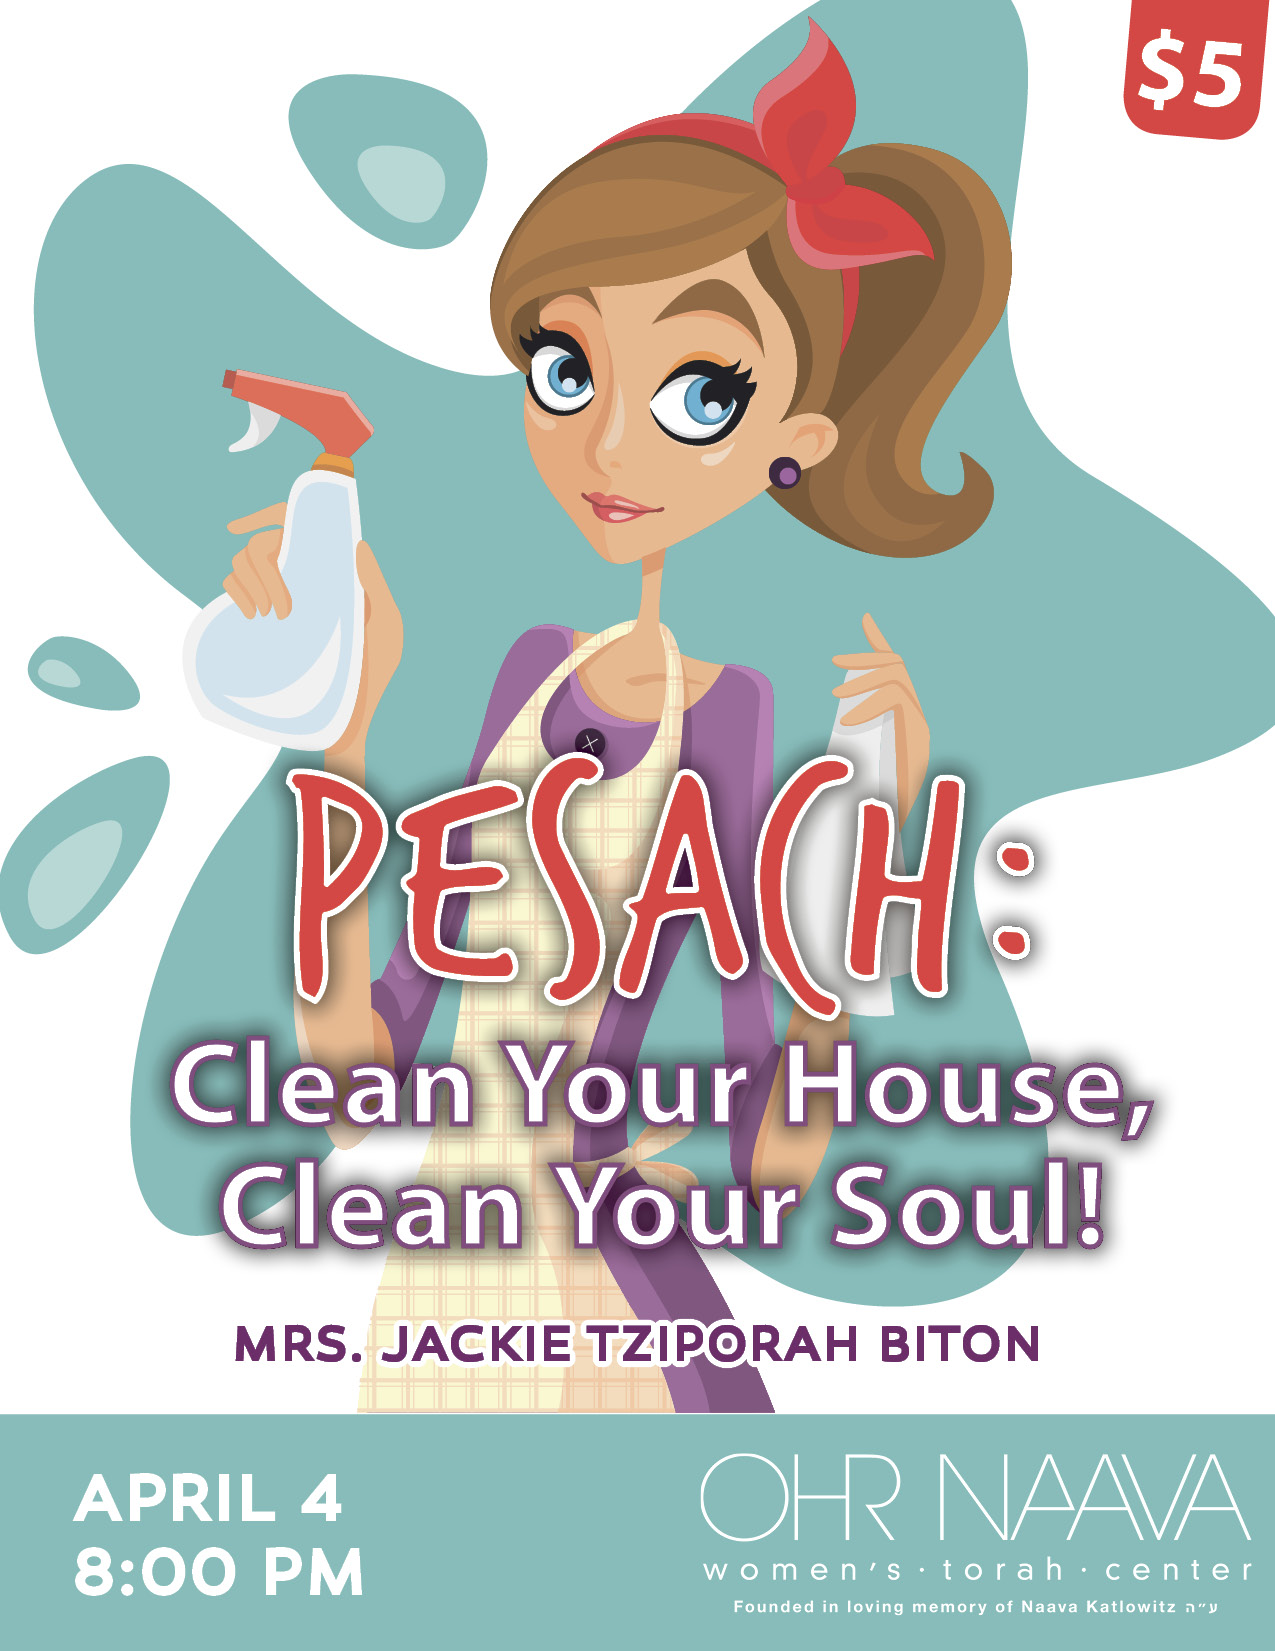 Pesach: Clean Your House, Clean Your Soul!